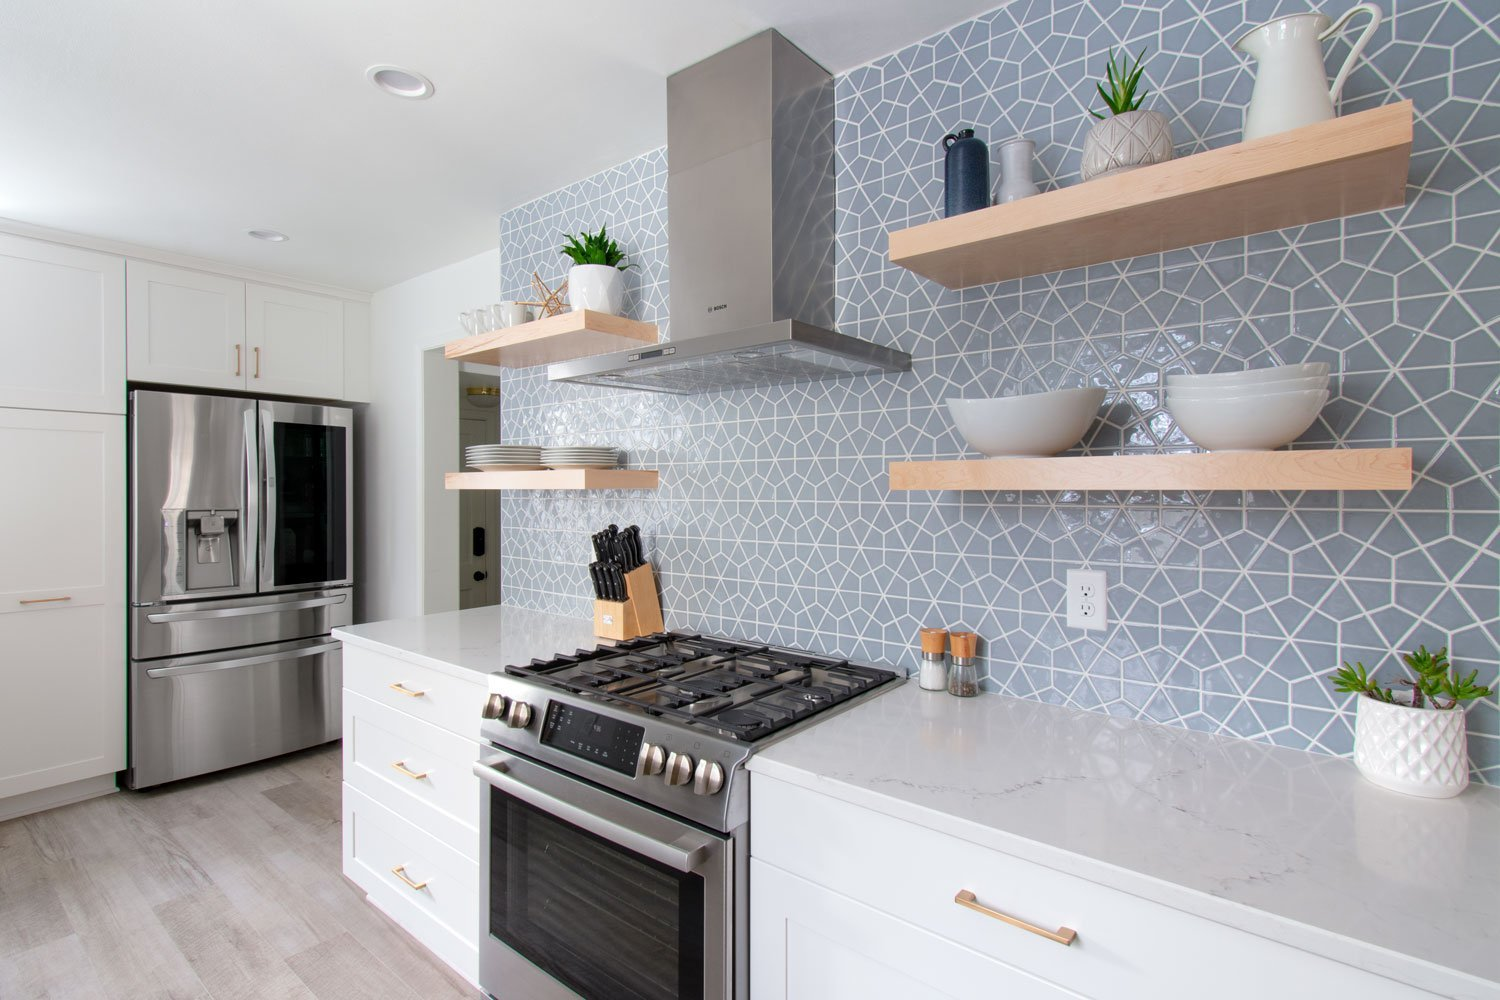 Open shelving with blue hexagon tile wall